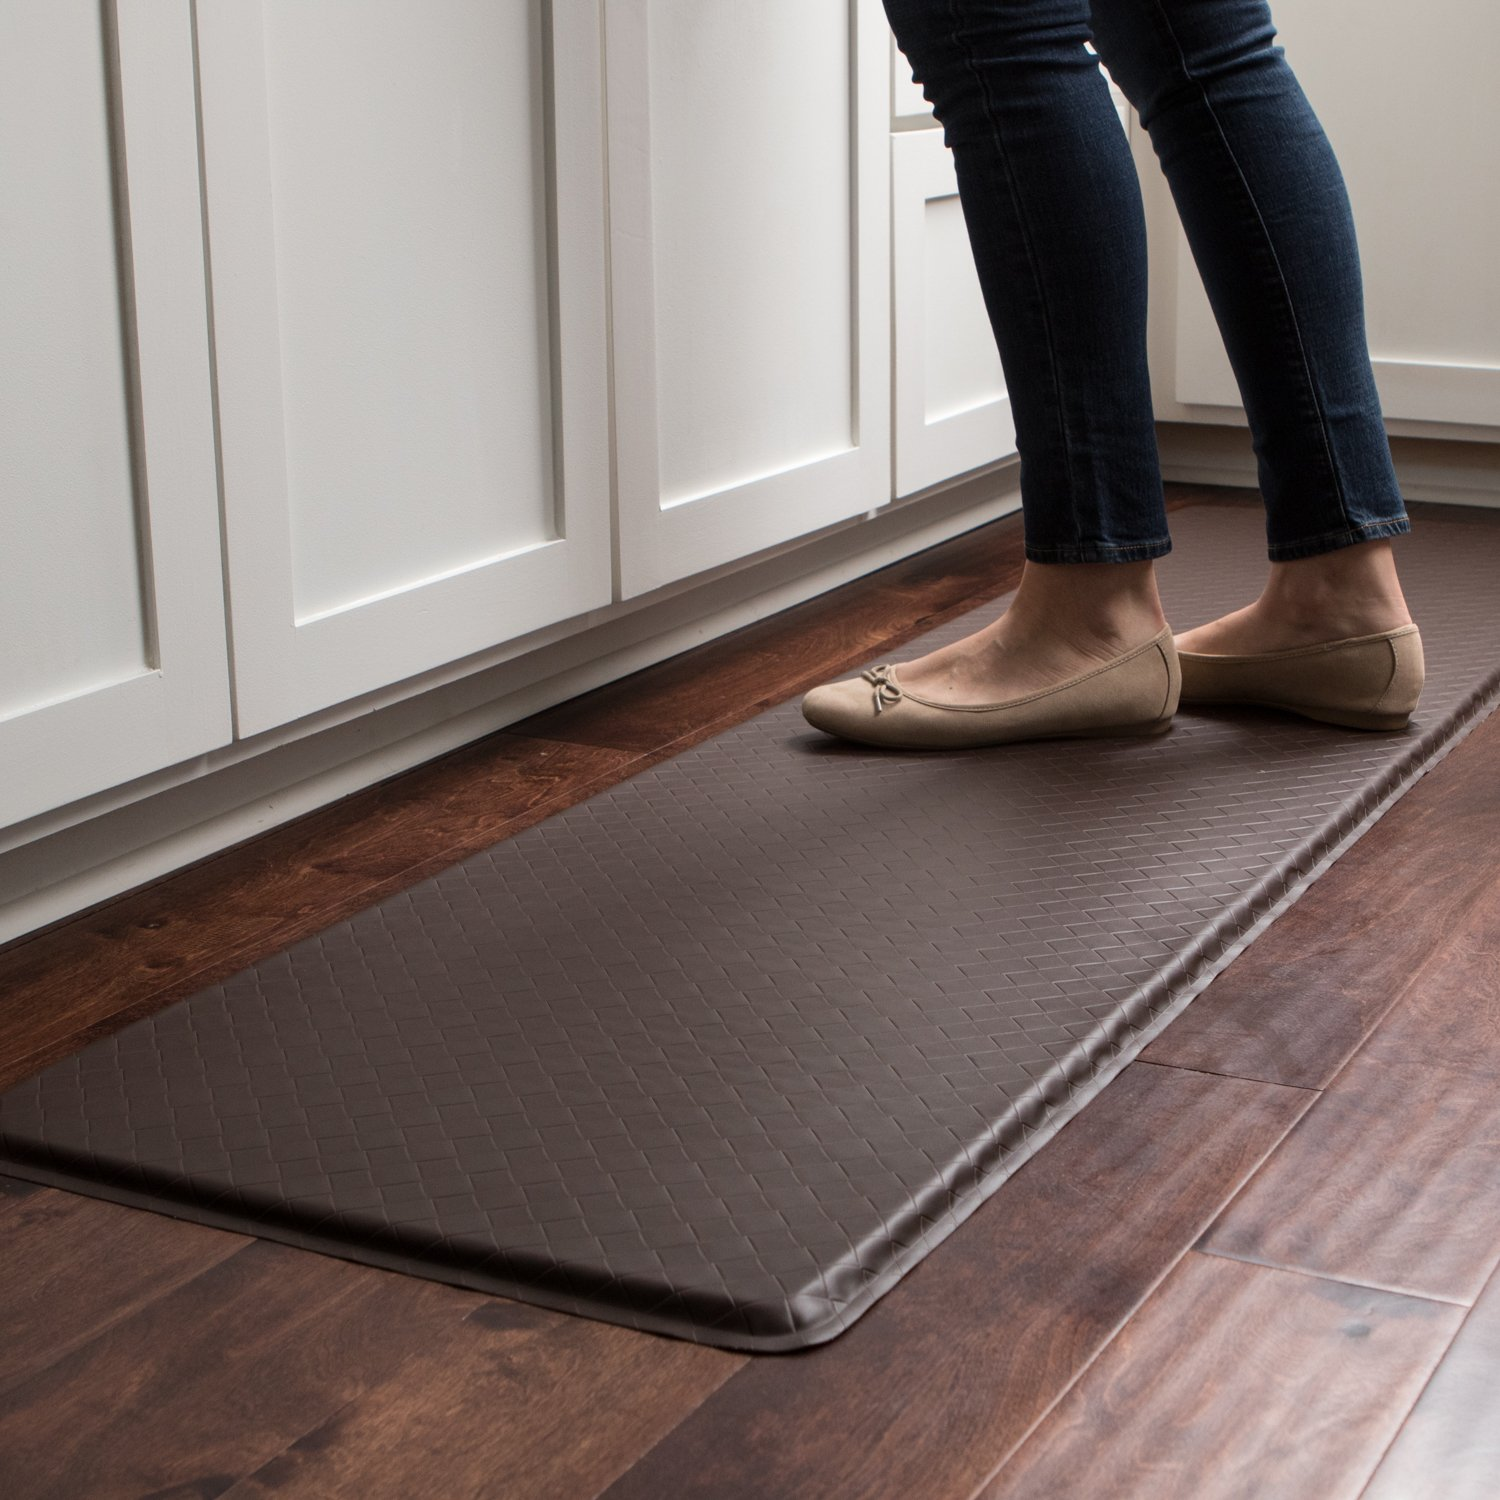 """GelPro Classic Anti-Fatigue Kitchen Comfort Chef Floor Mat, 20x72"""", Linen Cardinal Stain Resistant Surface with ½"""" gel core for health & wellness by GelPro (Image #5)"""